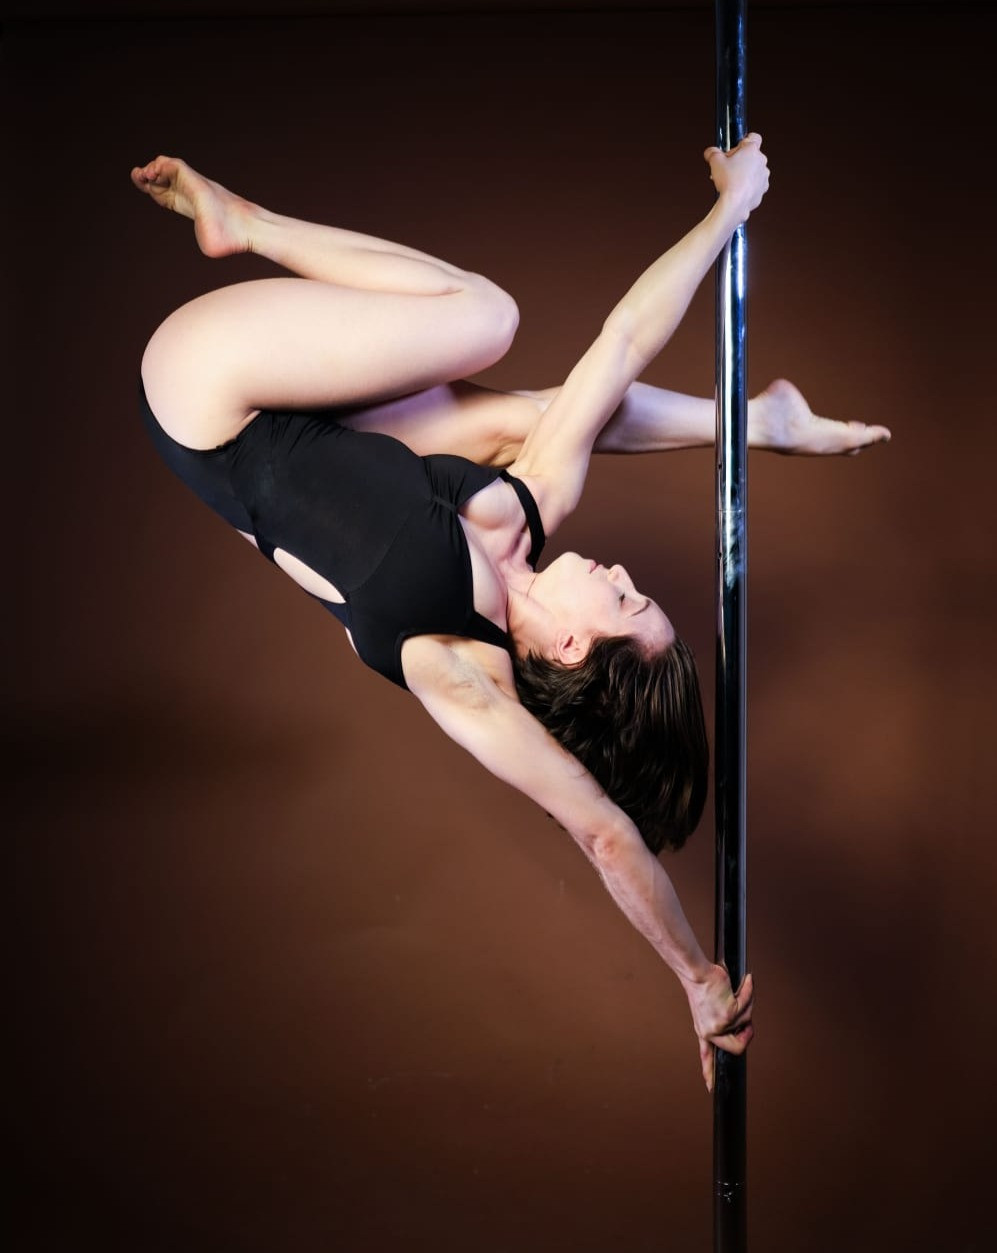 Rain Handspring Workshop Pole Flow Berlin Pole Dance Berlin